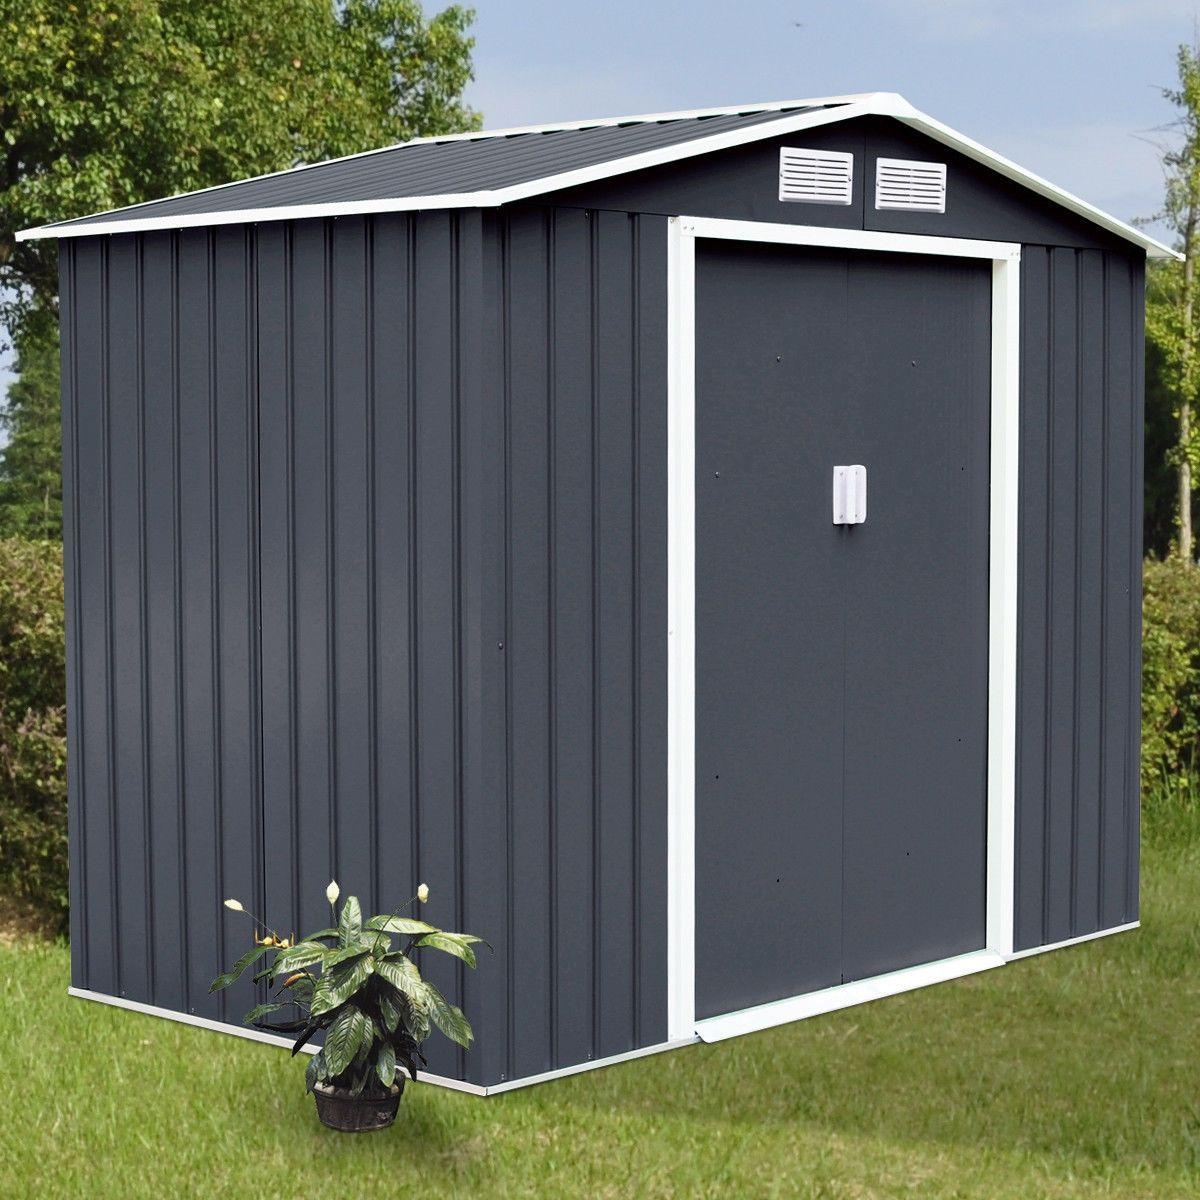 7 X 4 Outdoor Garden Storage Shed Tool House With Sliding Door In 2020 Outdoor Garden Storage Garden Storage Shed Outdoor Storage Sheds